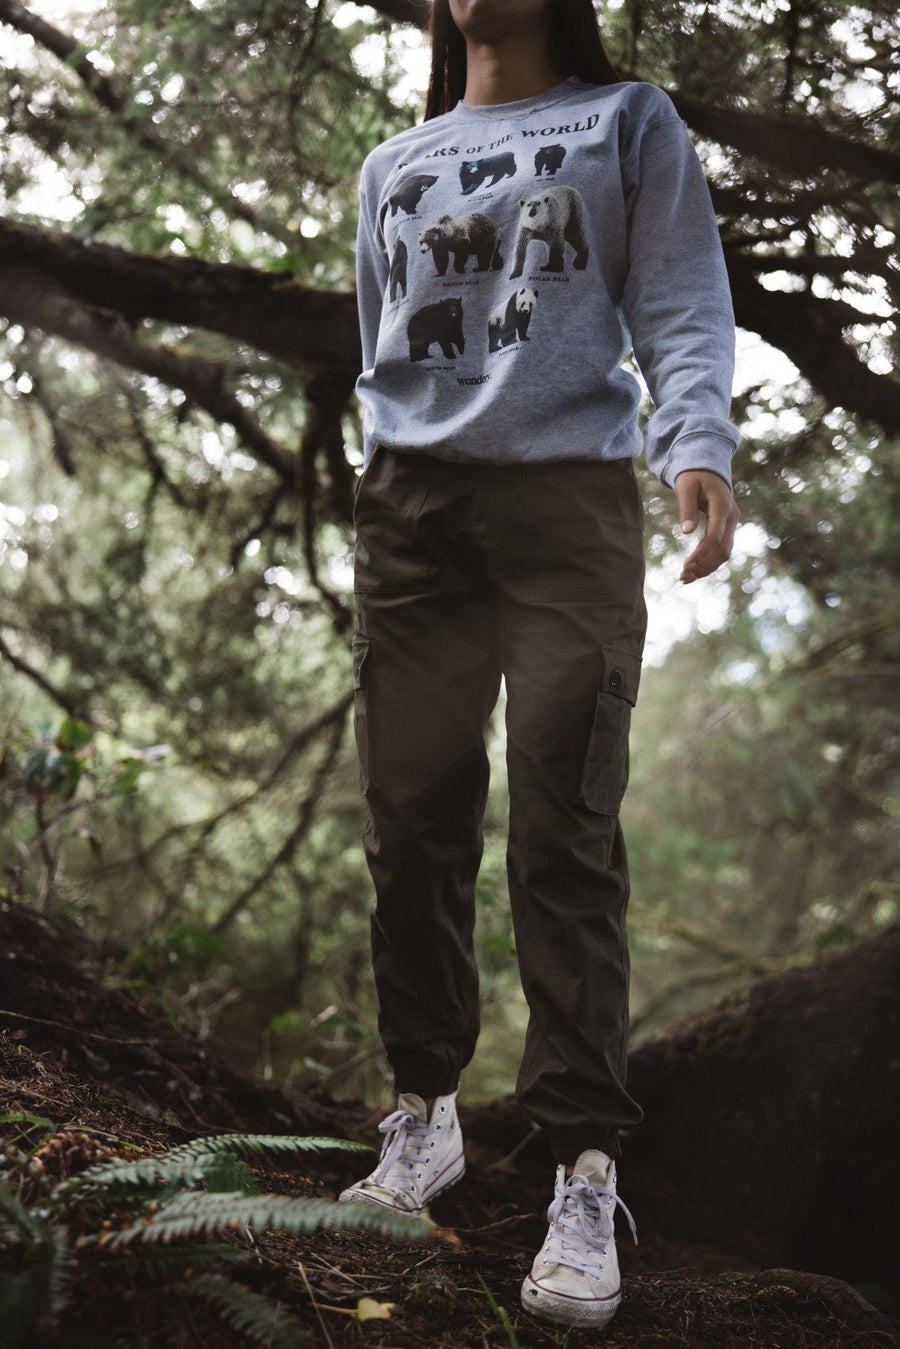 Bears of the World Crewneck - Wondery, A Parks Apparel Brand